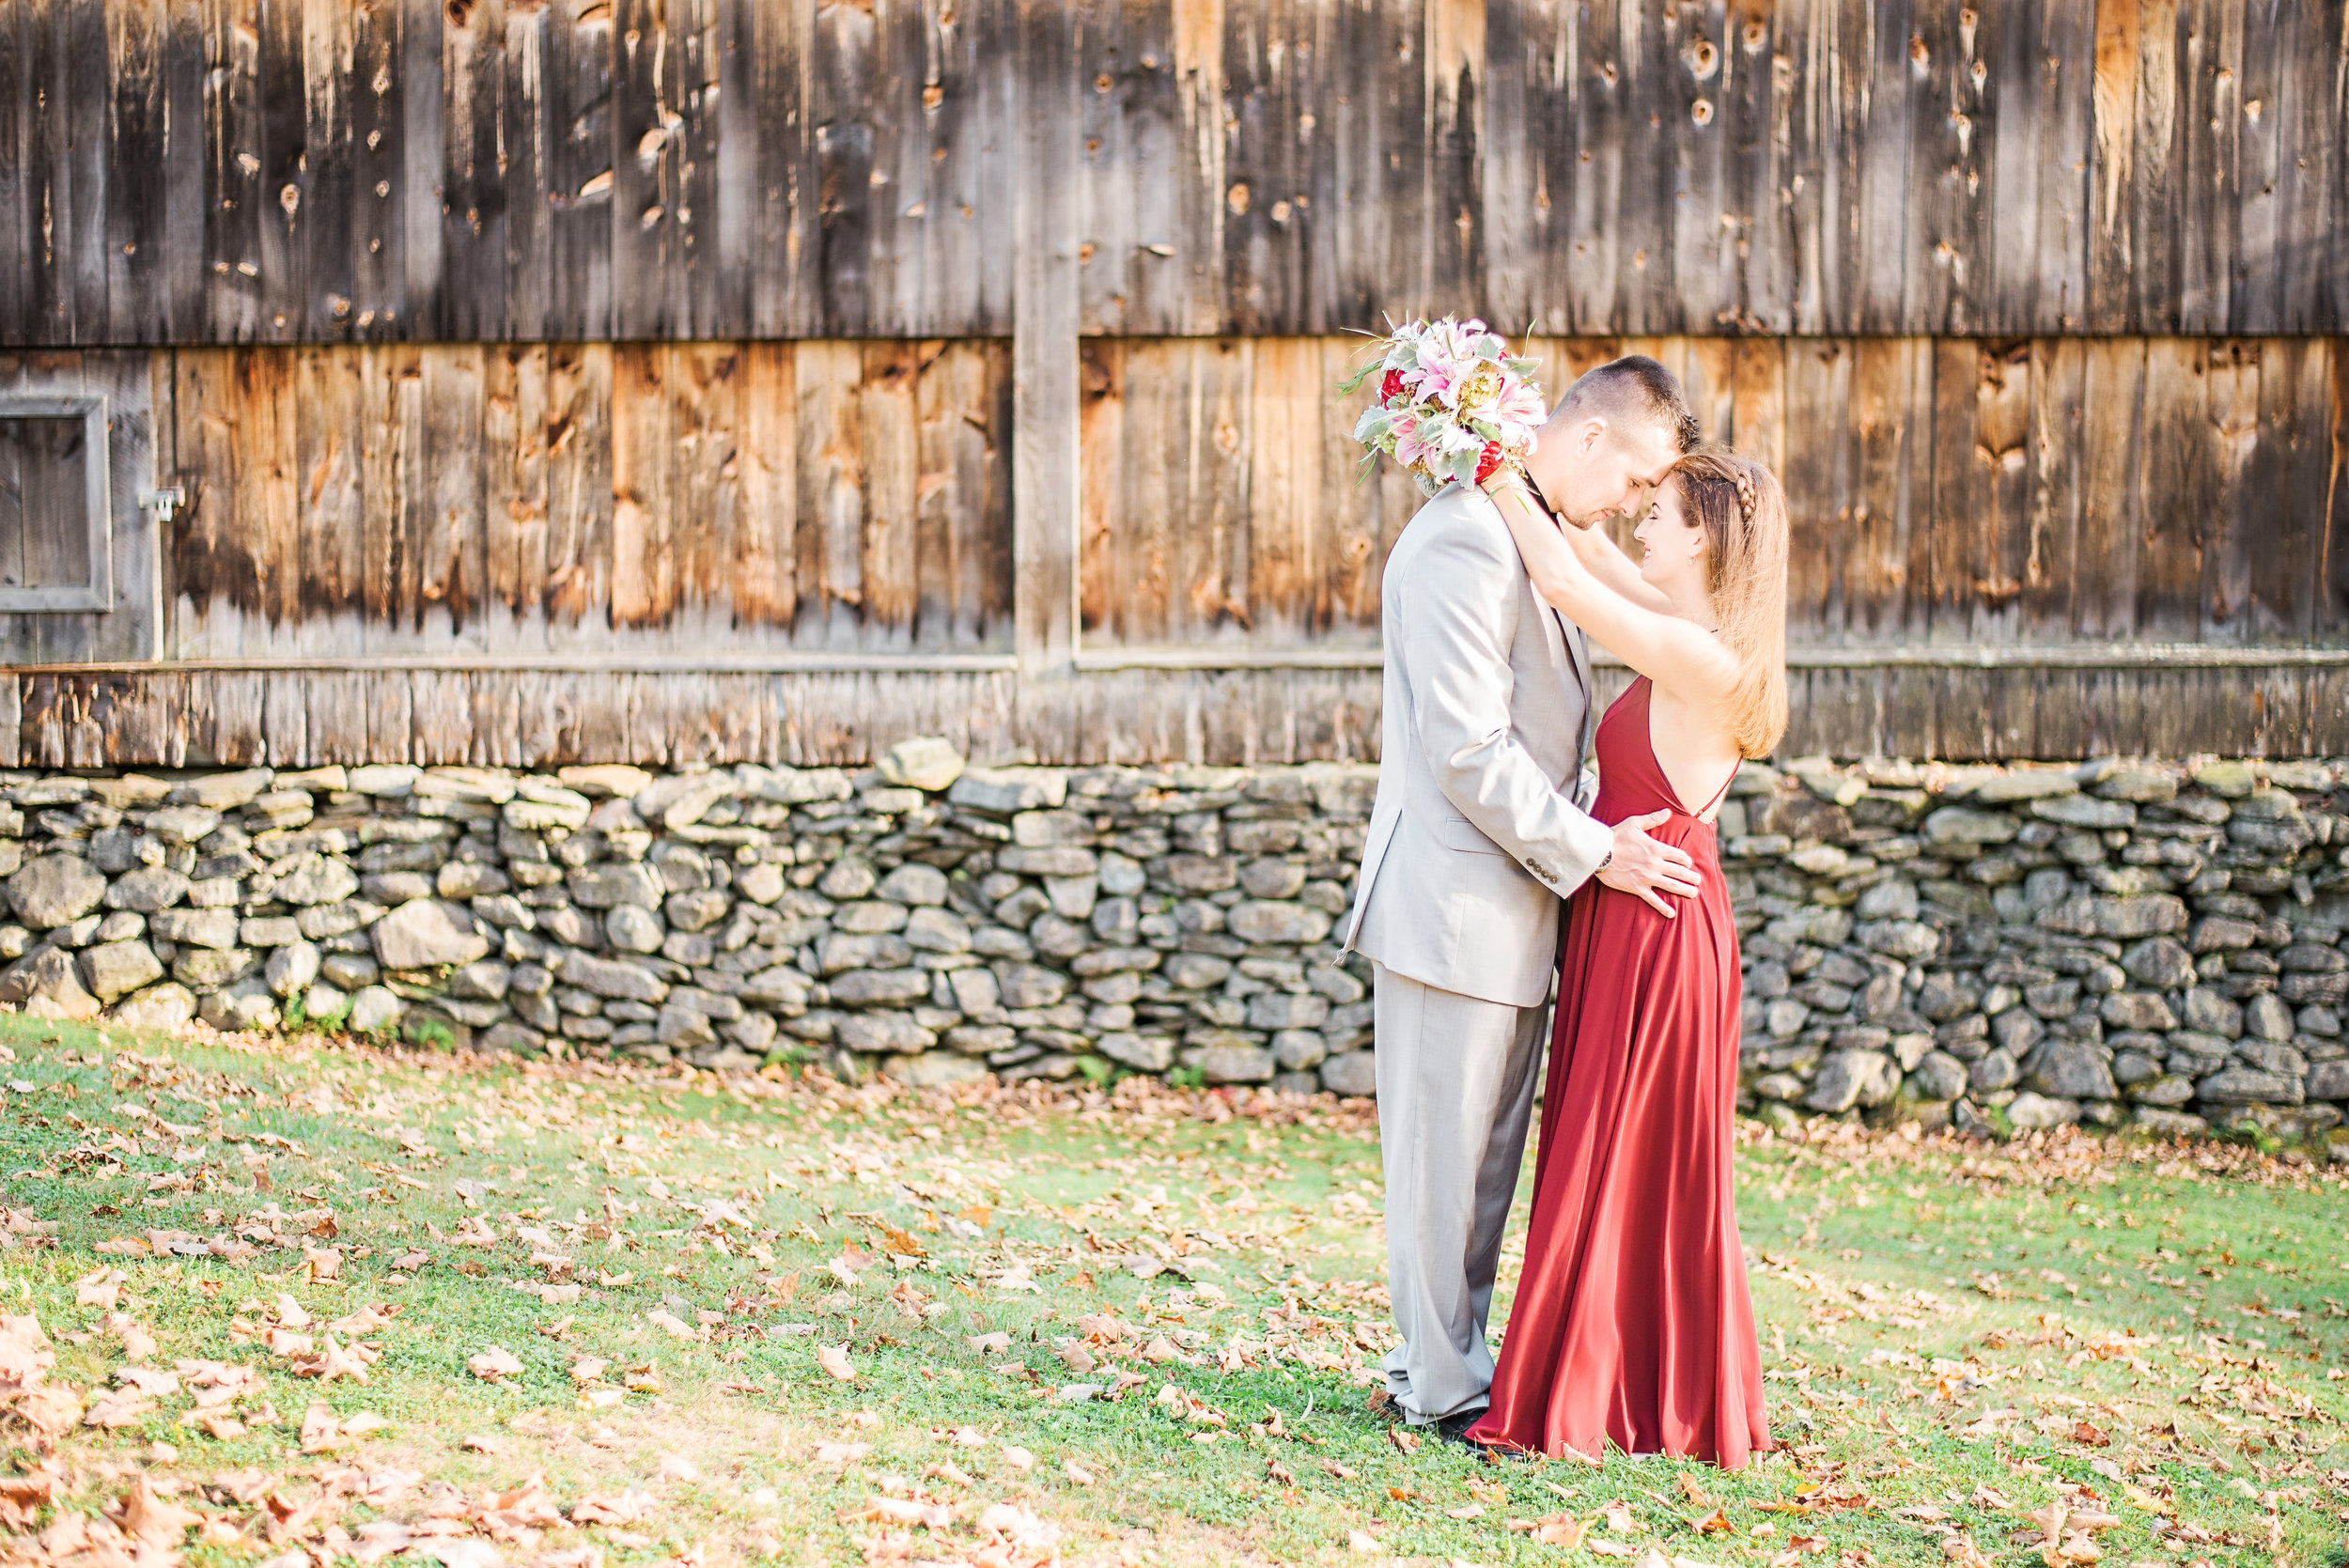 Moore State Park Paxton MA Boston Wedding Photographer Engagement Suit and tie gown Fall .jpg